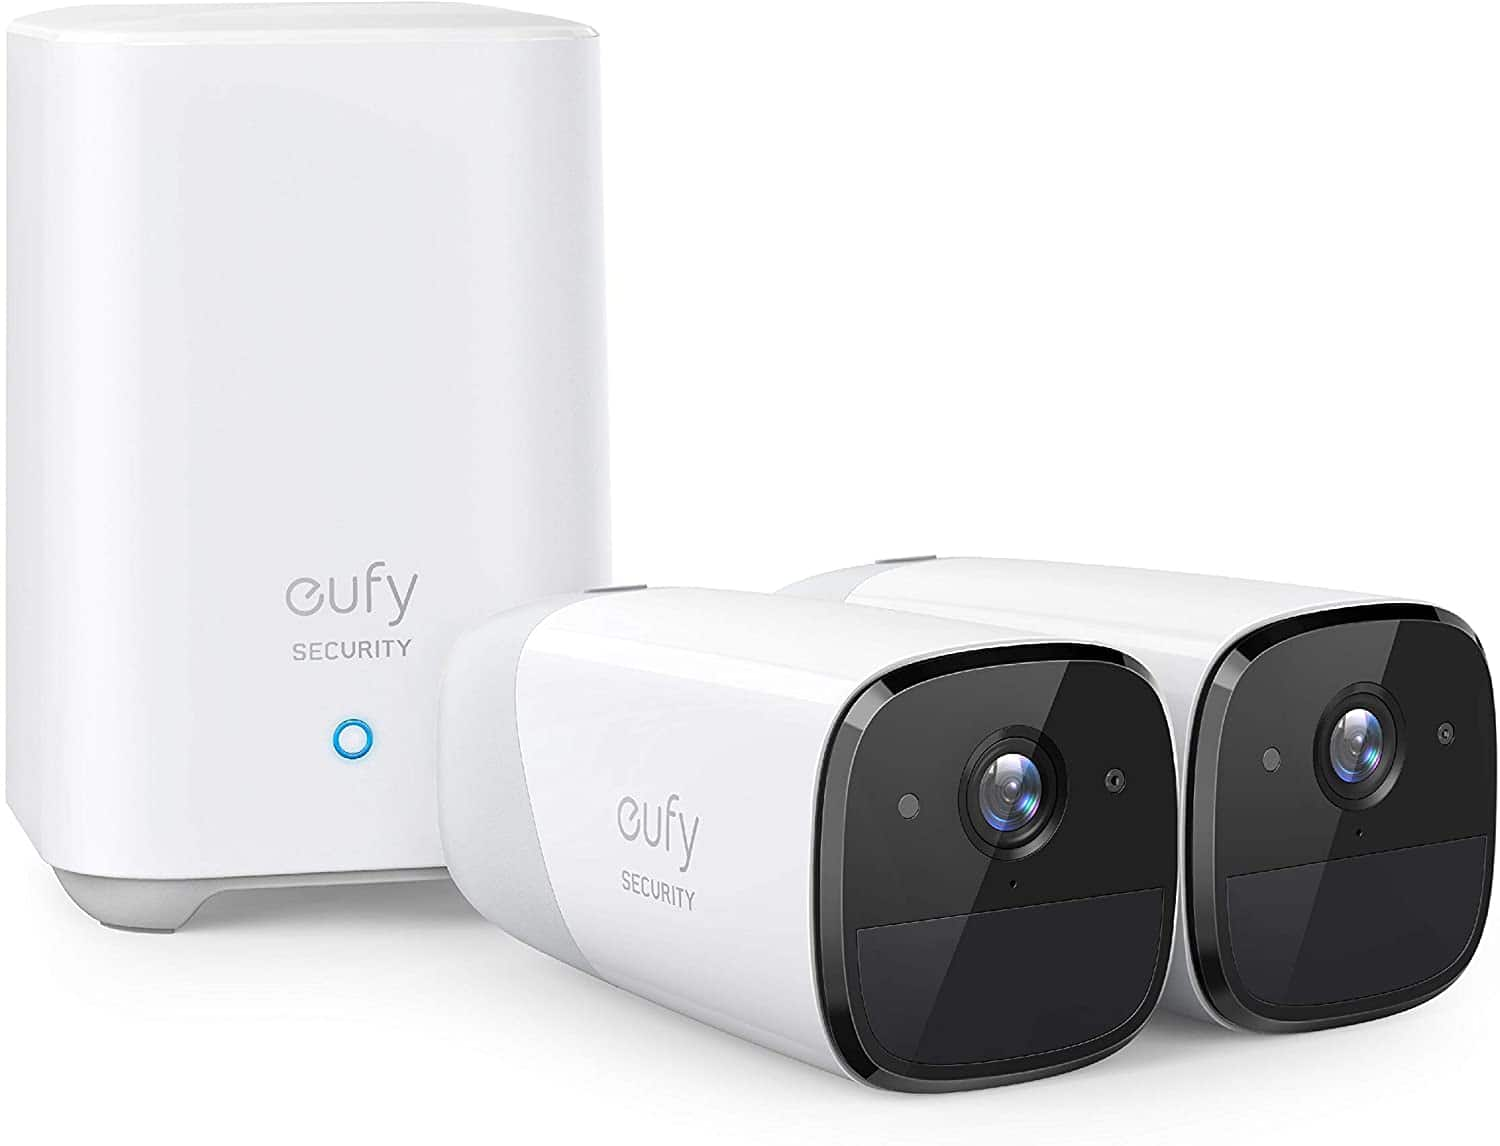 Today only! Eufycam 2, 2 cam kit $209.99 Amazon FS and other Eufy deals